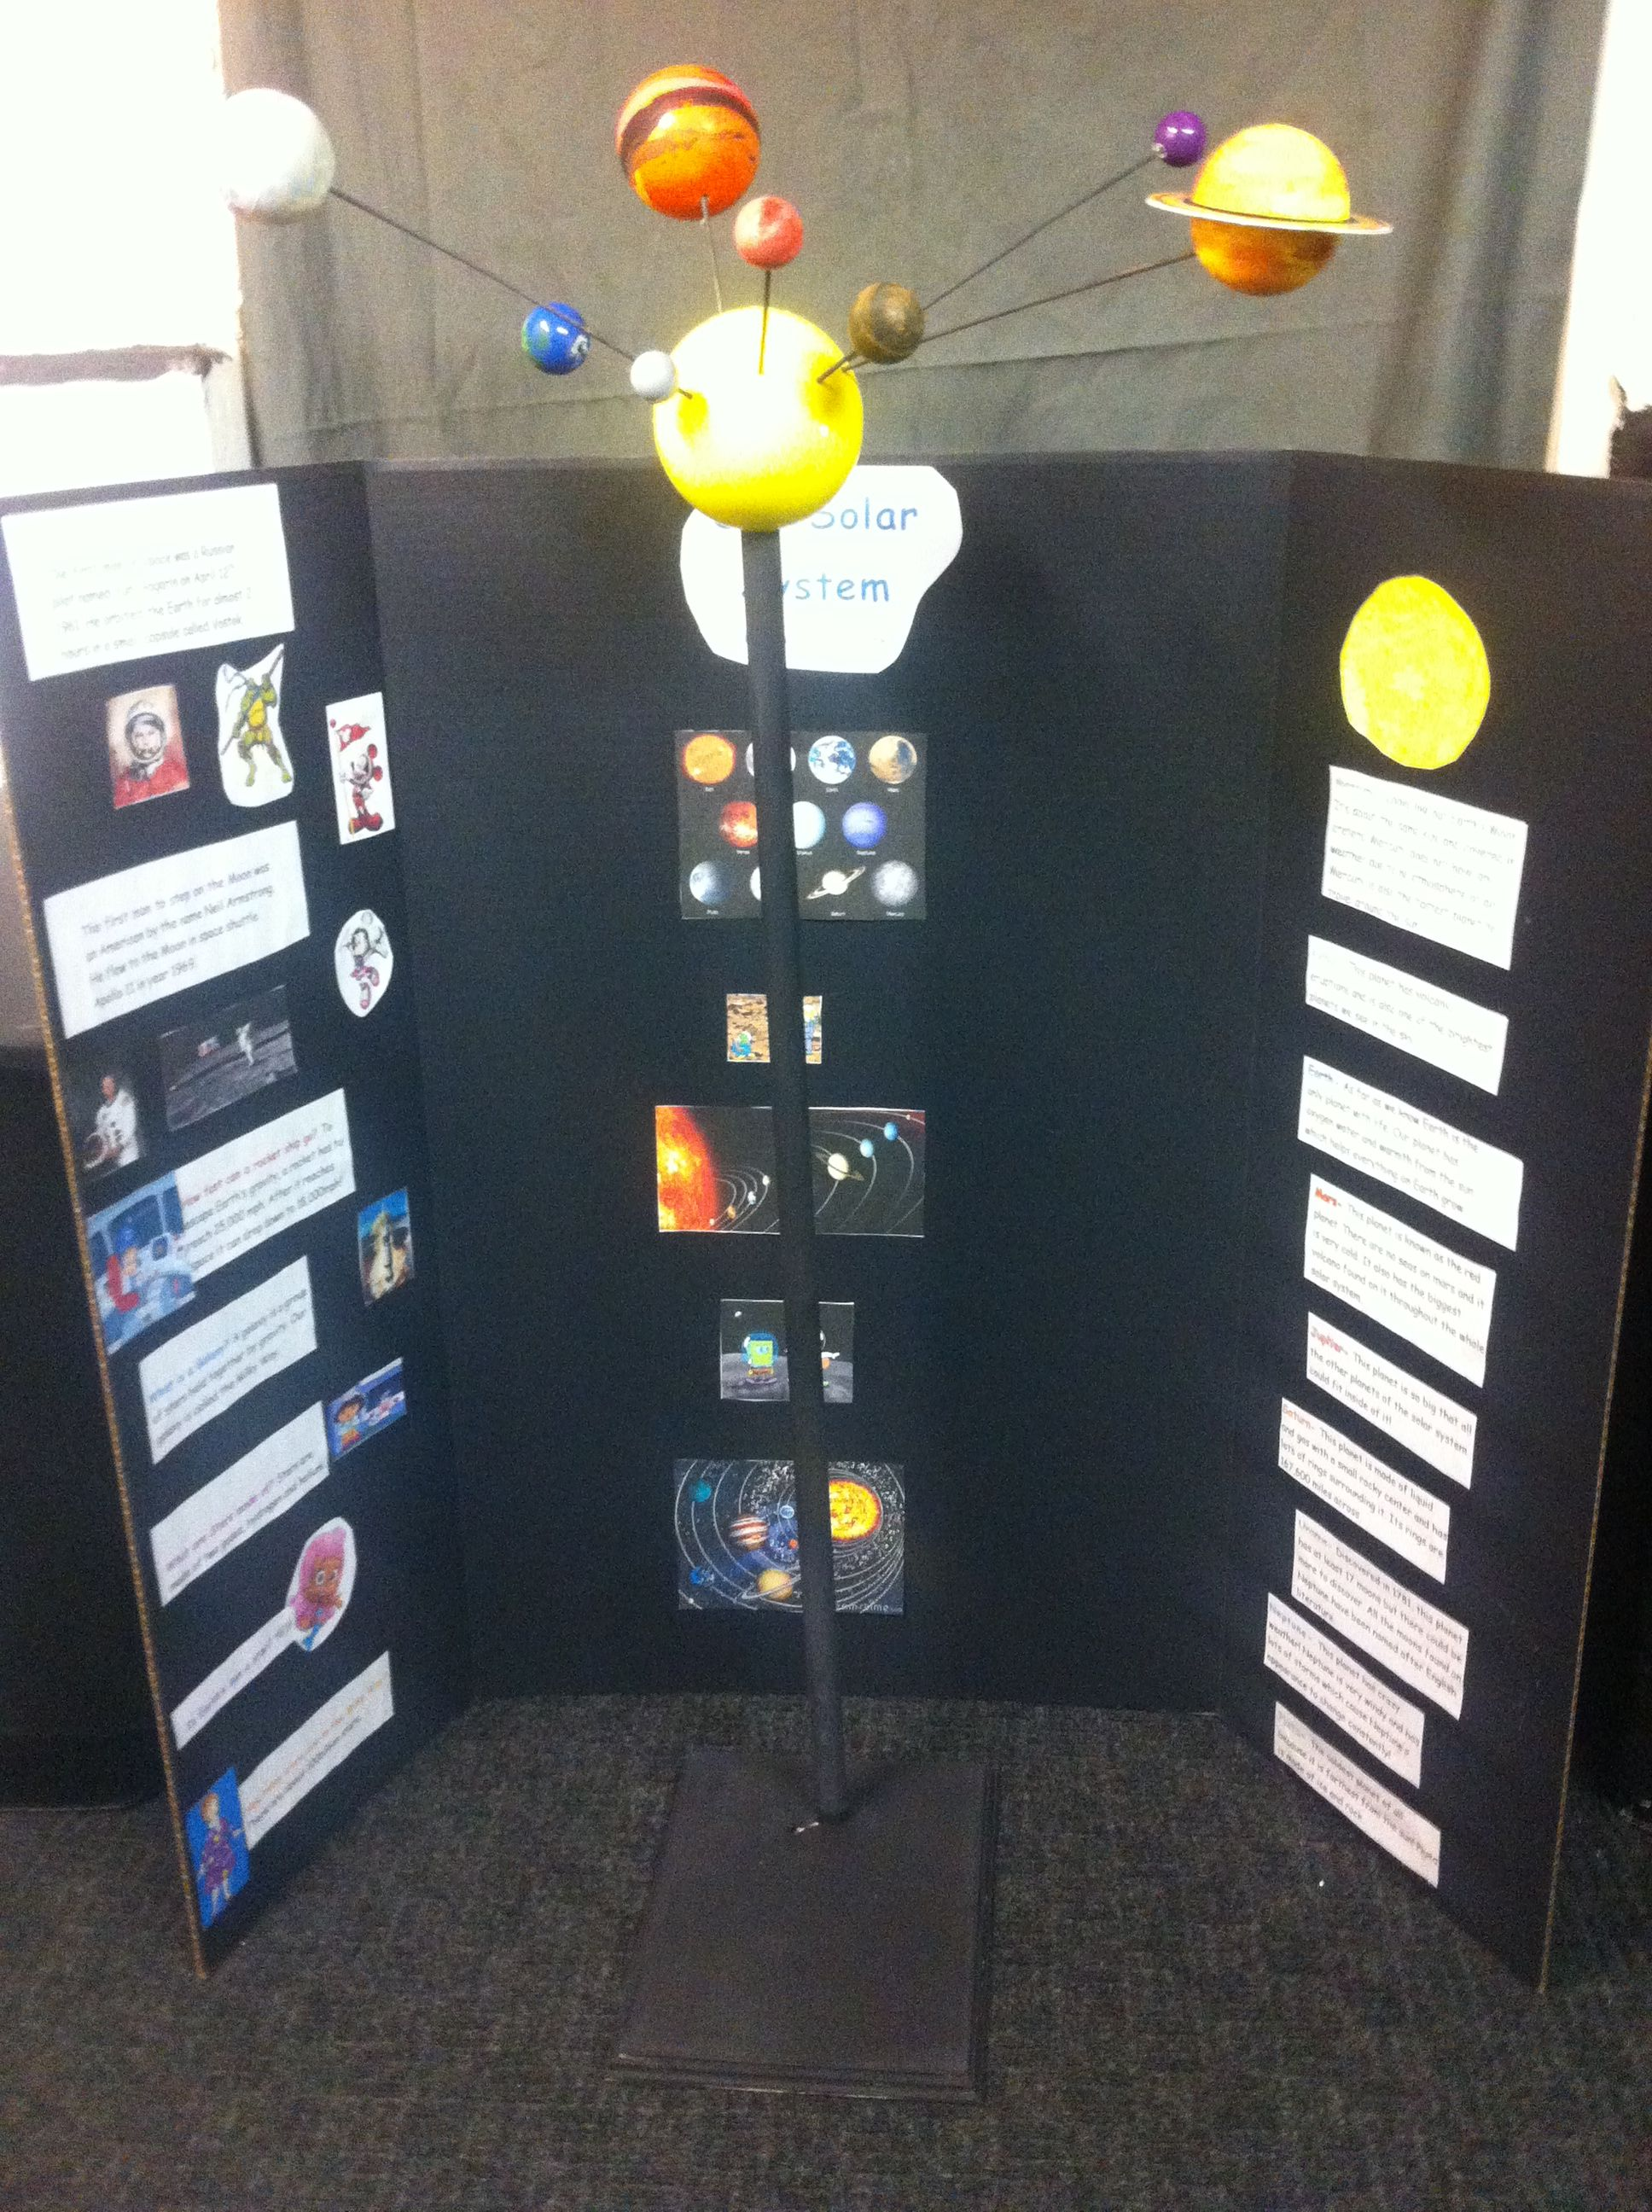 Jaylins Solar System Project Poster Board And A Mobile